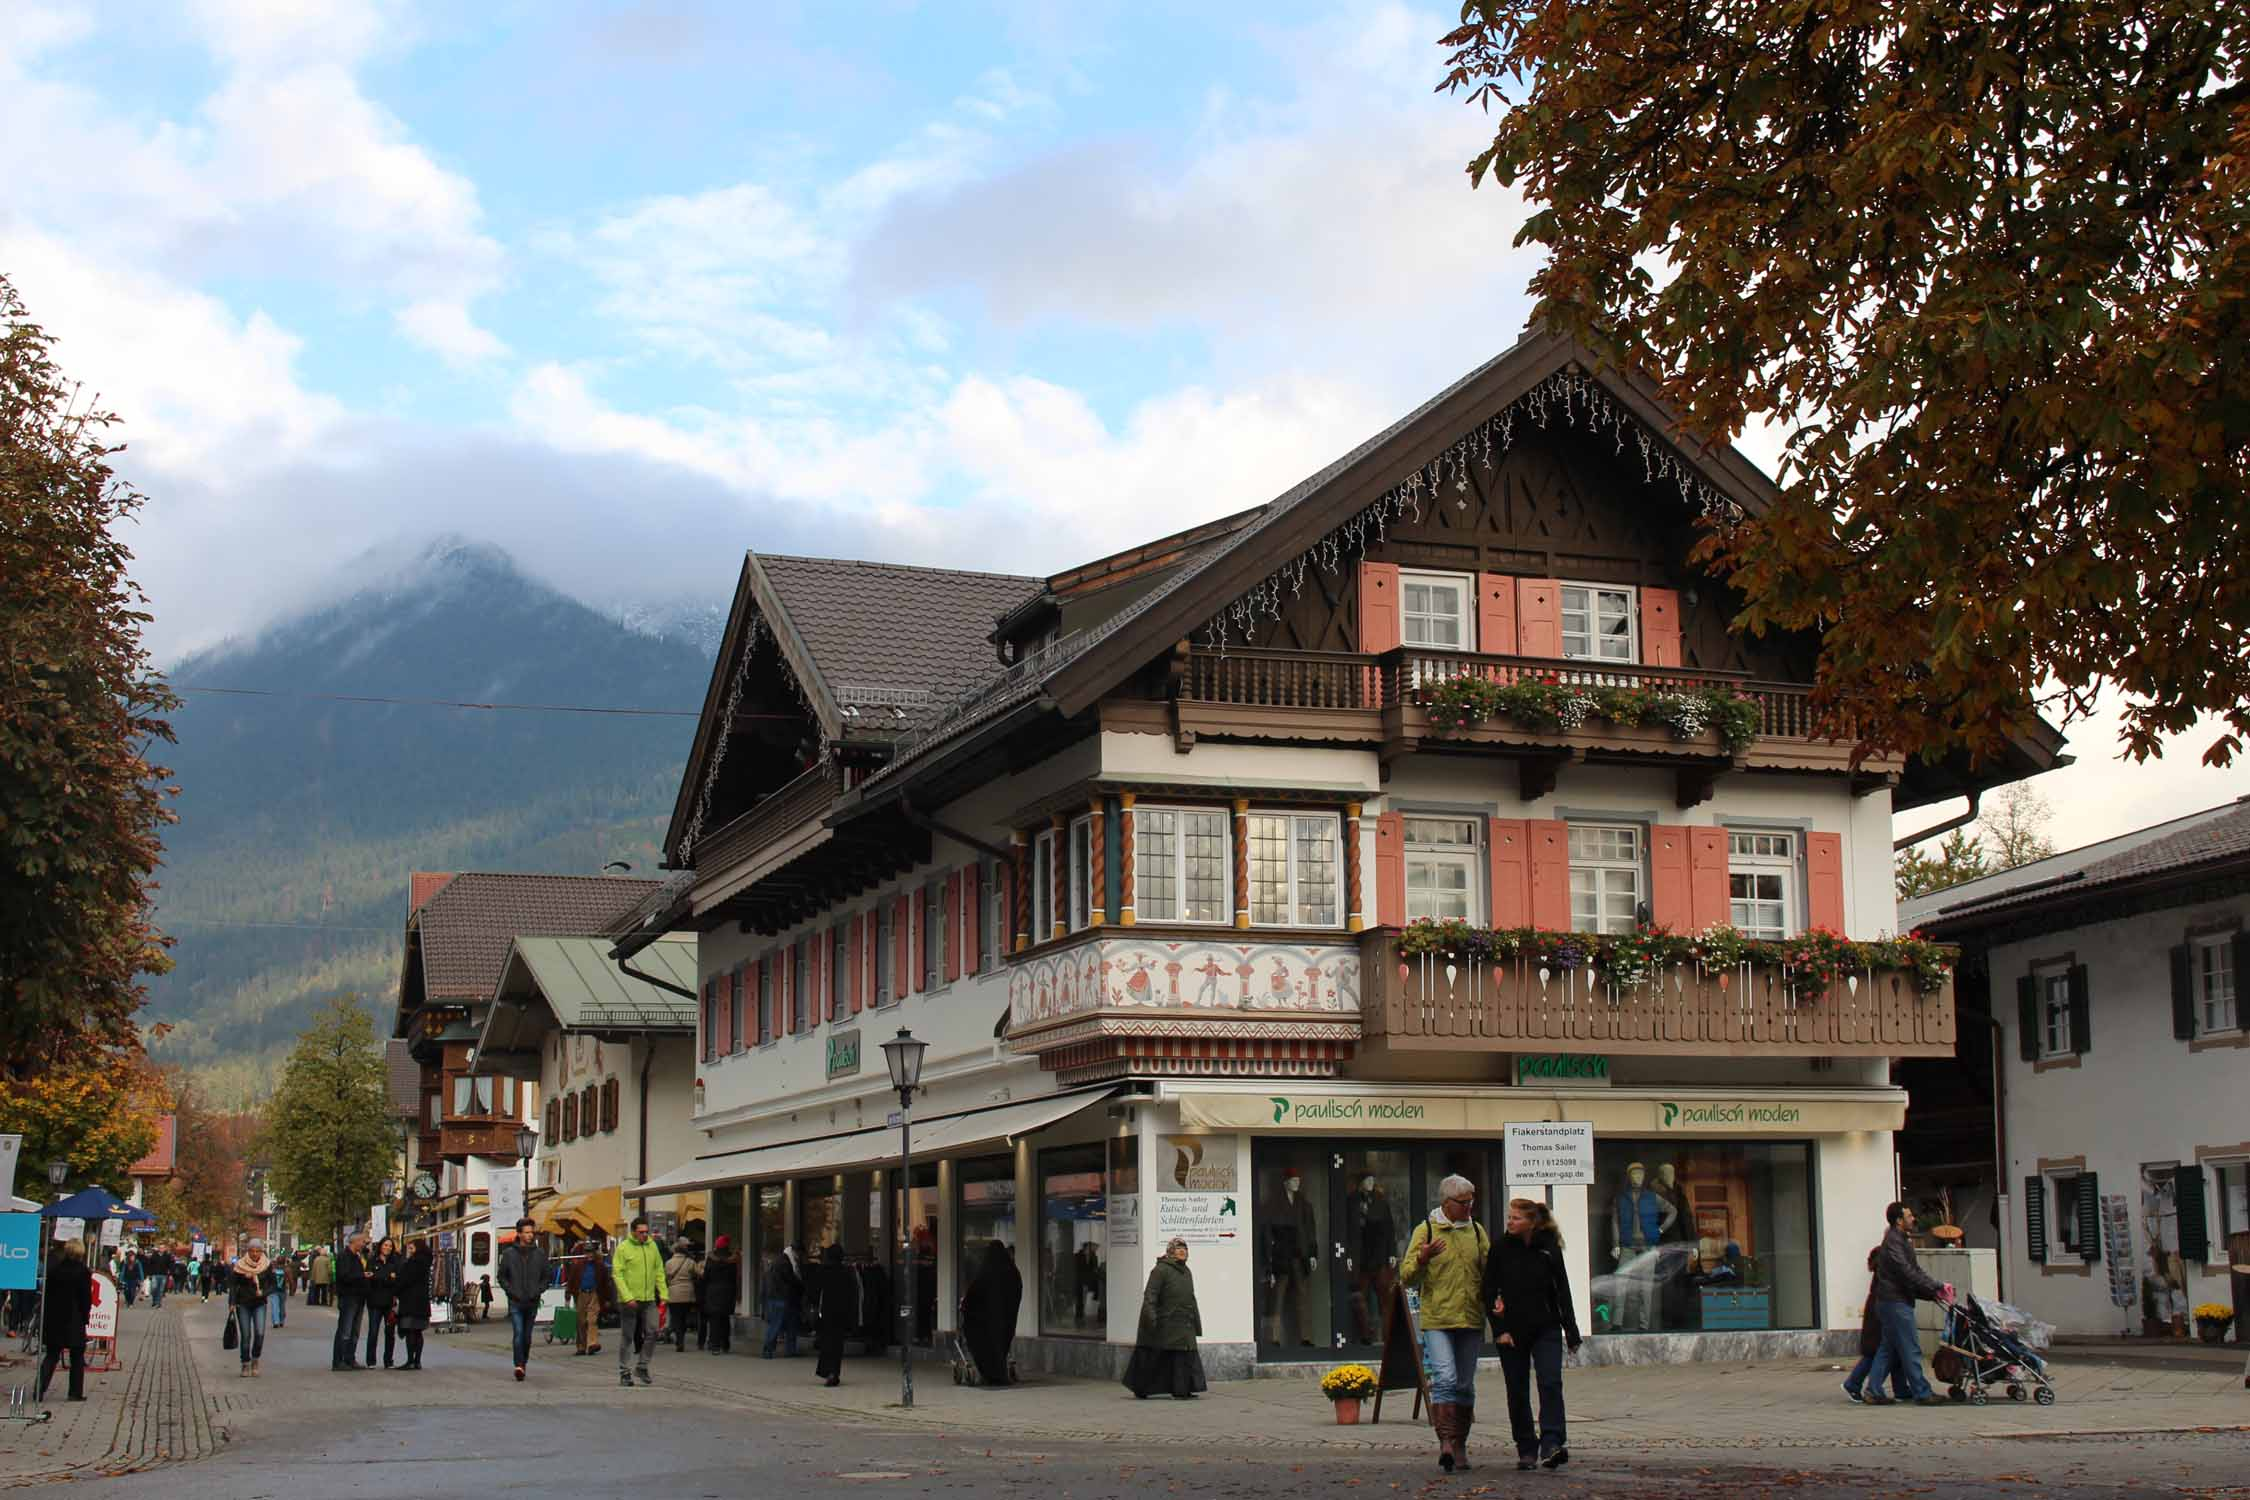 The city center of Garmisch-Partenkirchen